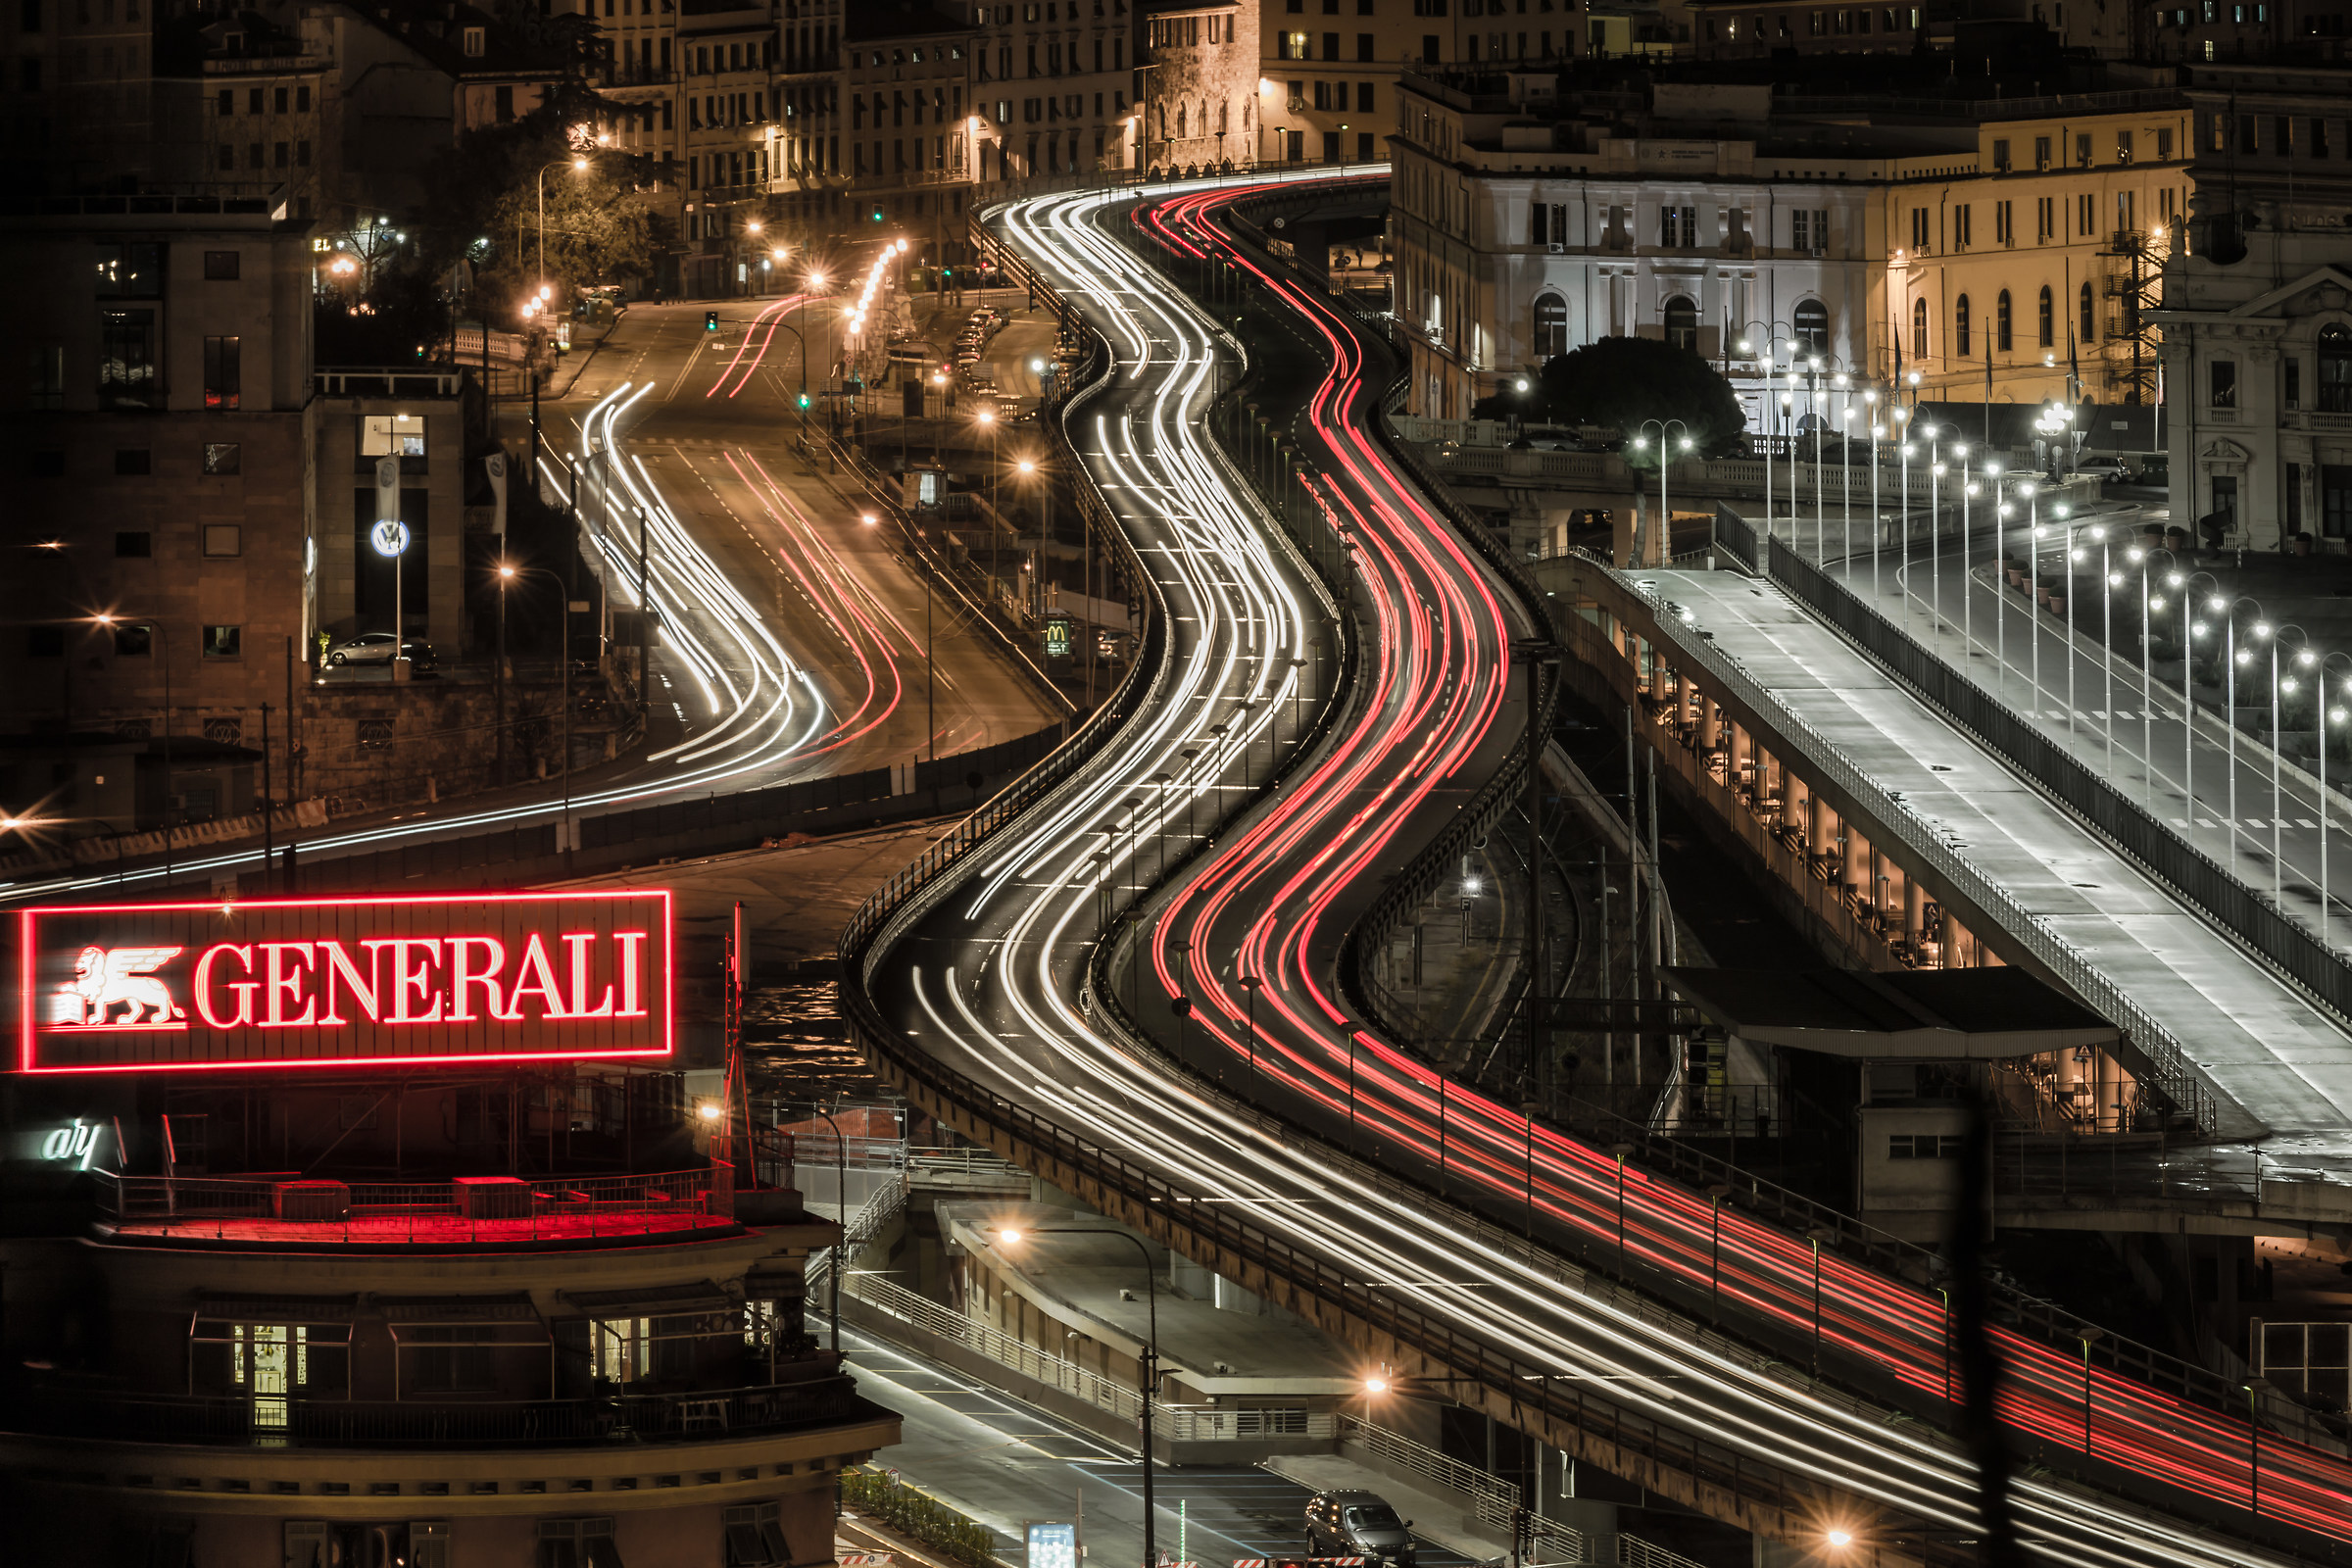 the elevated road in the night...